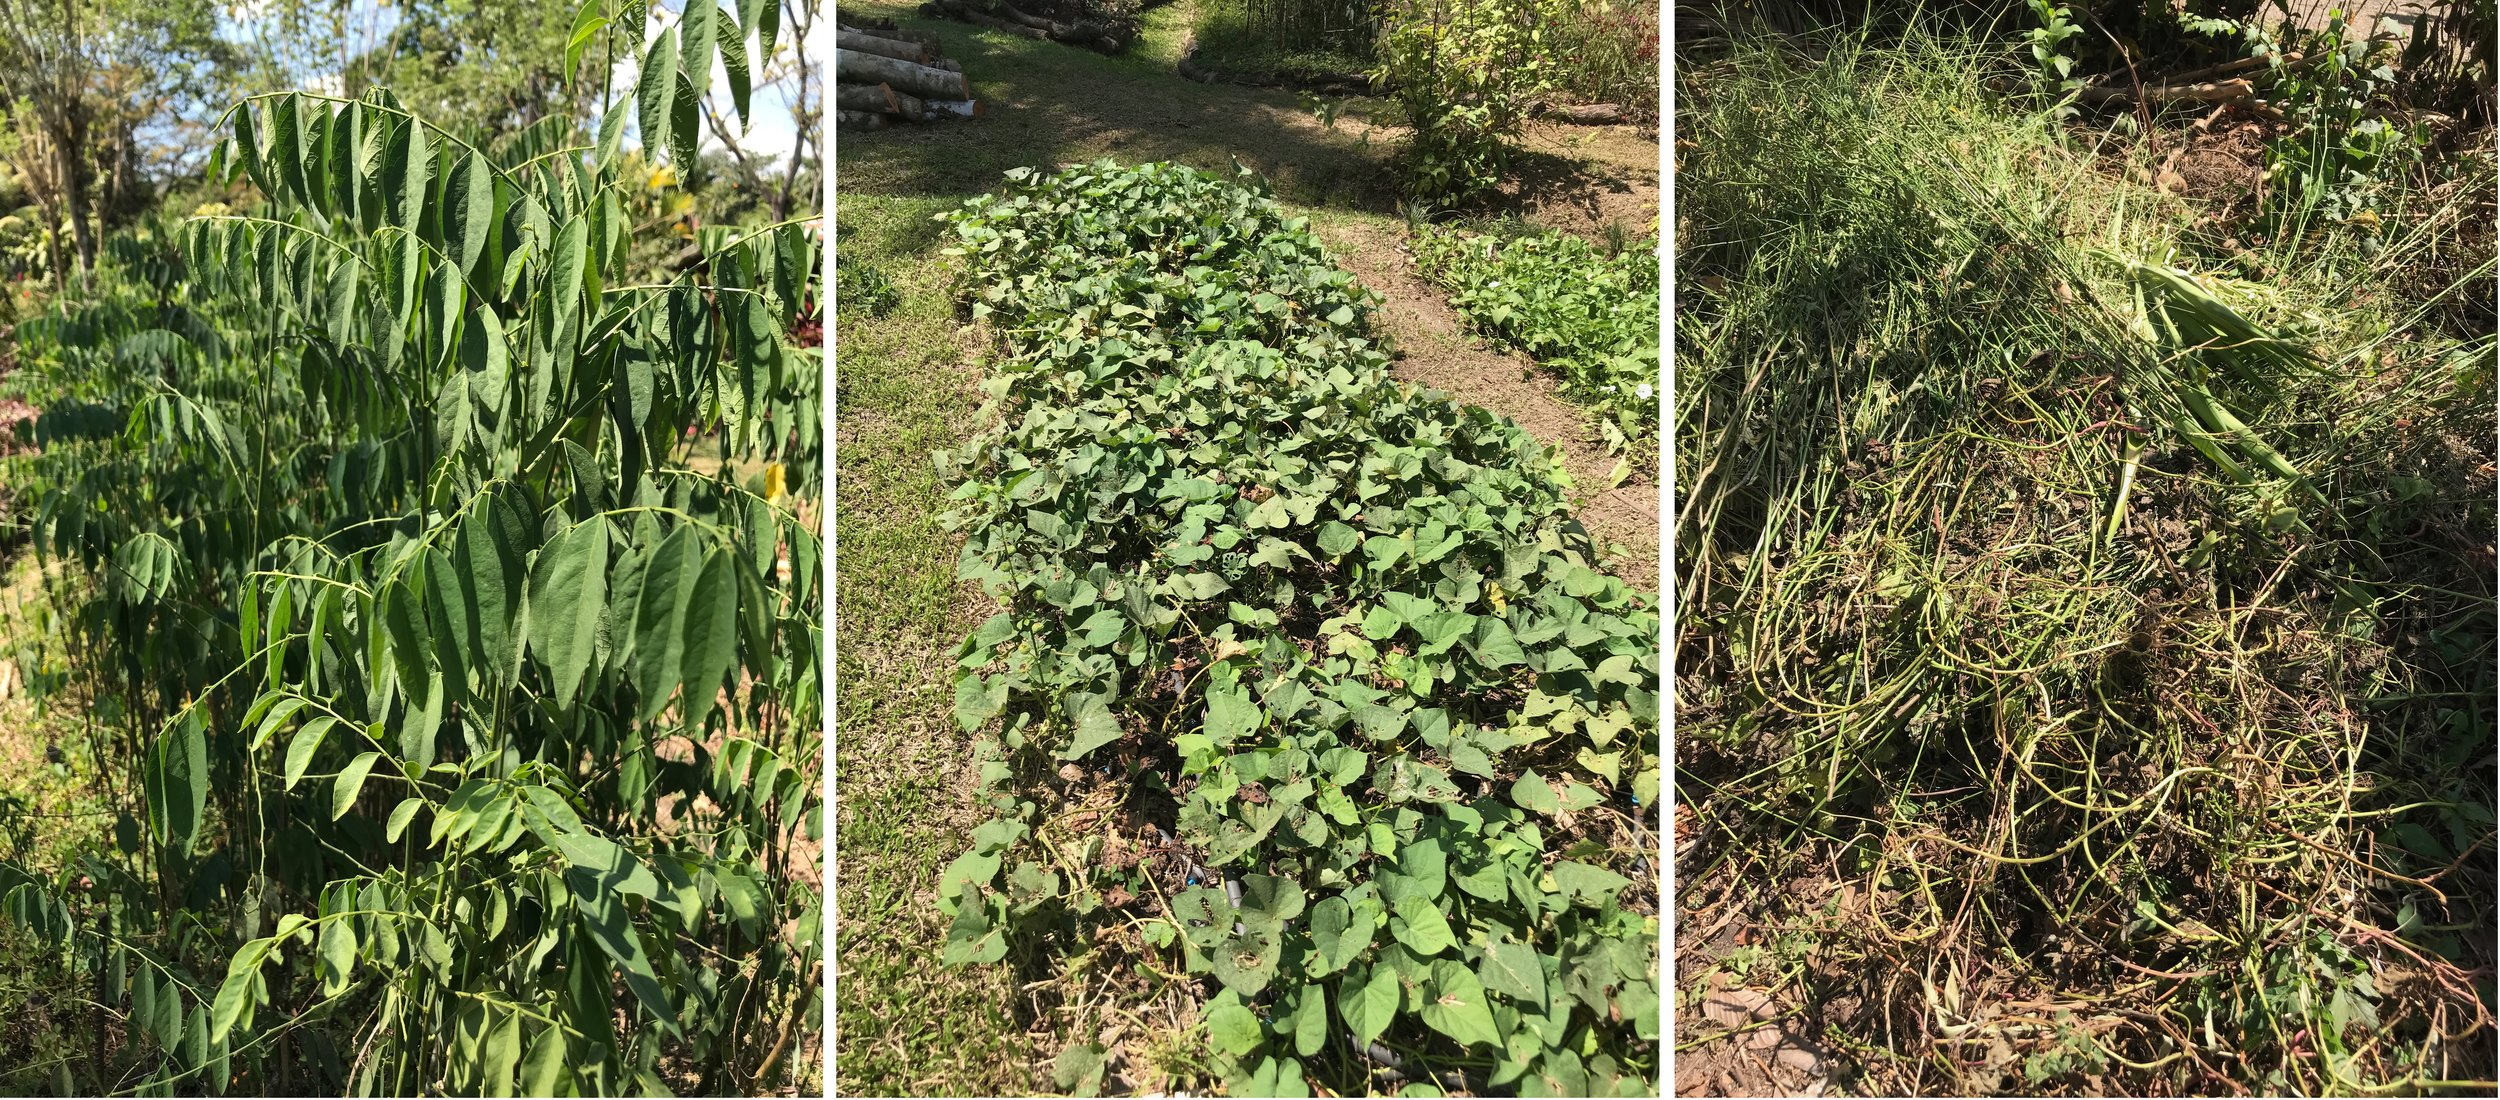 Katuk, Sweet Potato vines, some examples of vines used for basket weaving.